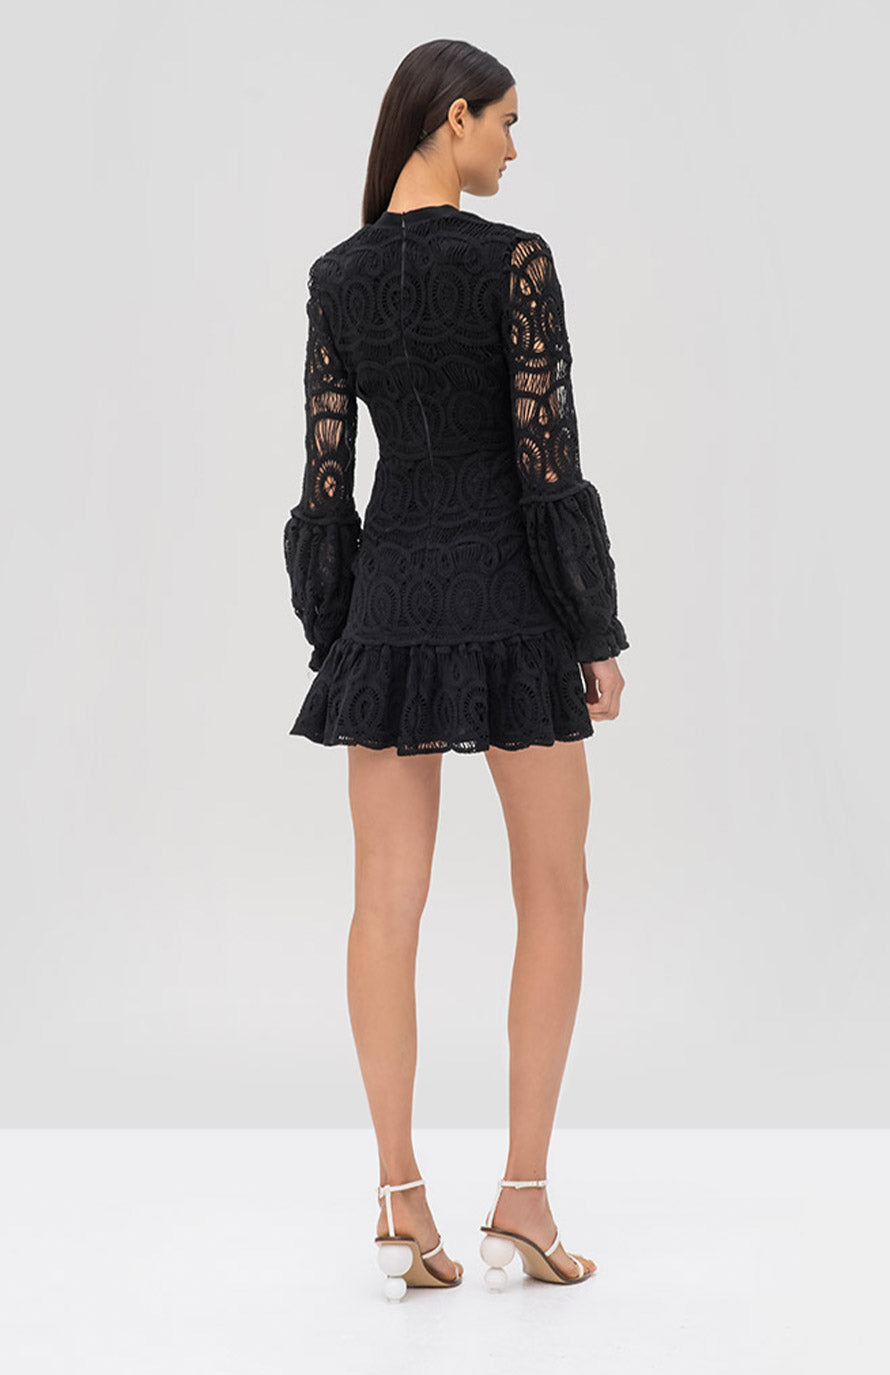 Alexis Liliyan Dress Black - Rear View